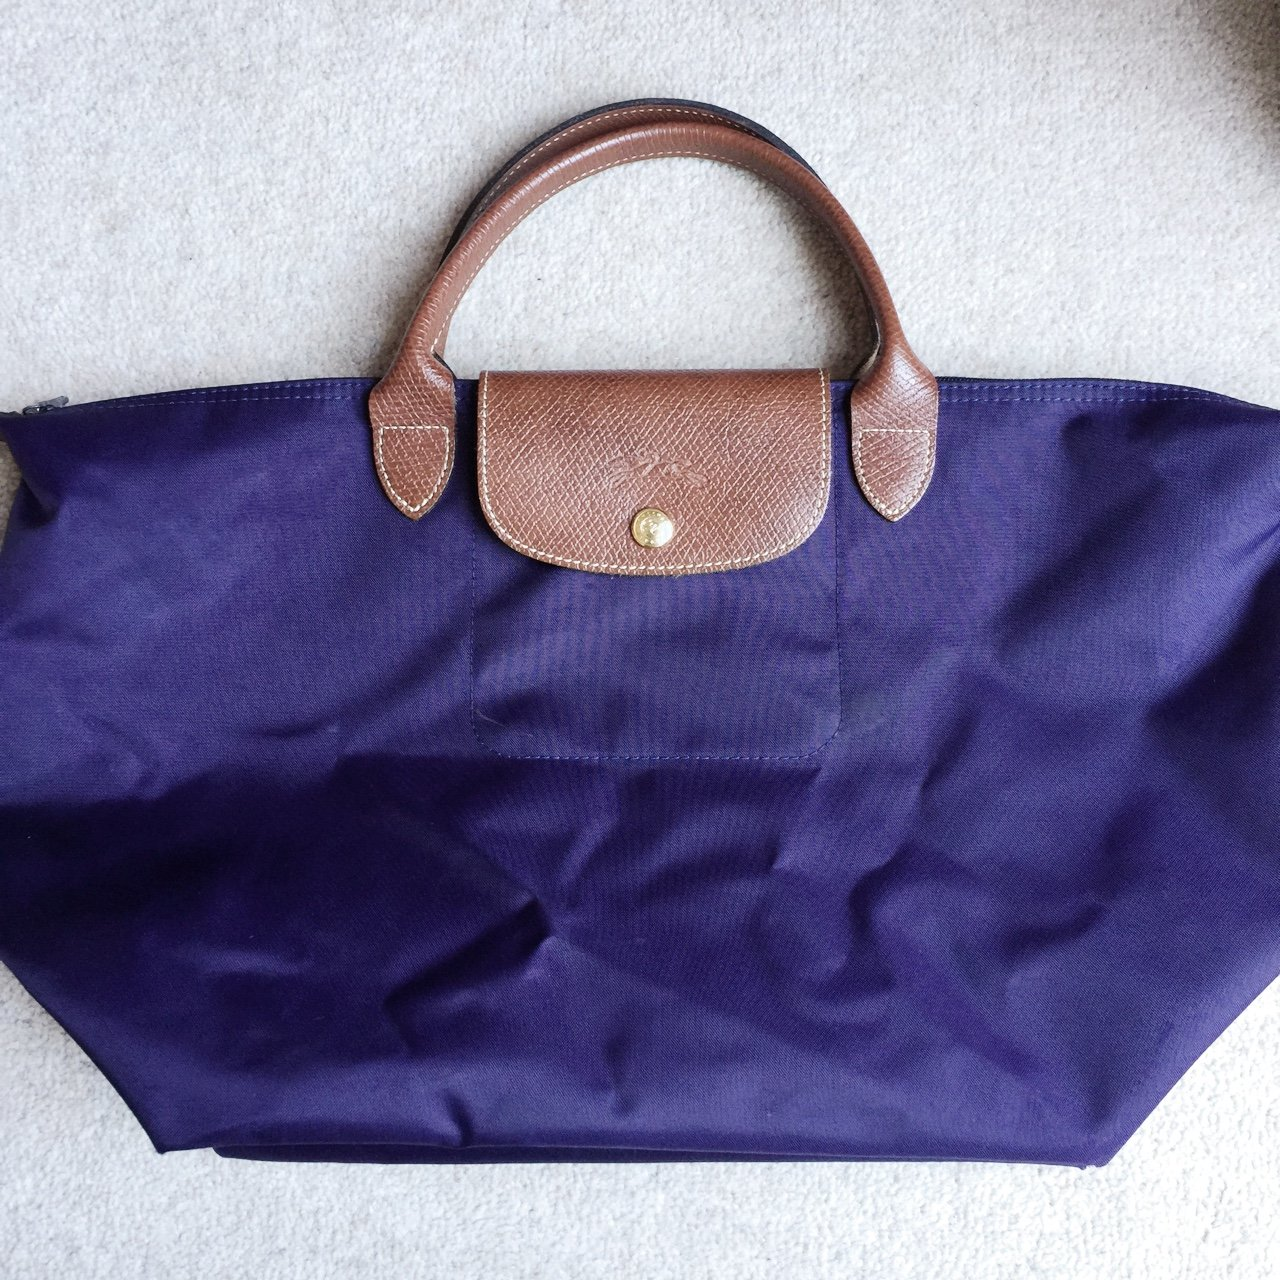 905d51e1d8f55  hcanderson. 3 years ago. United Kingdom. Real  longchamp purple bag.